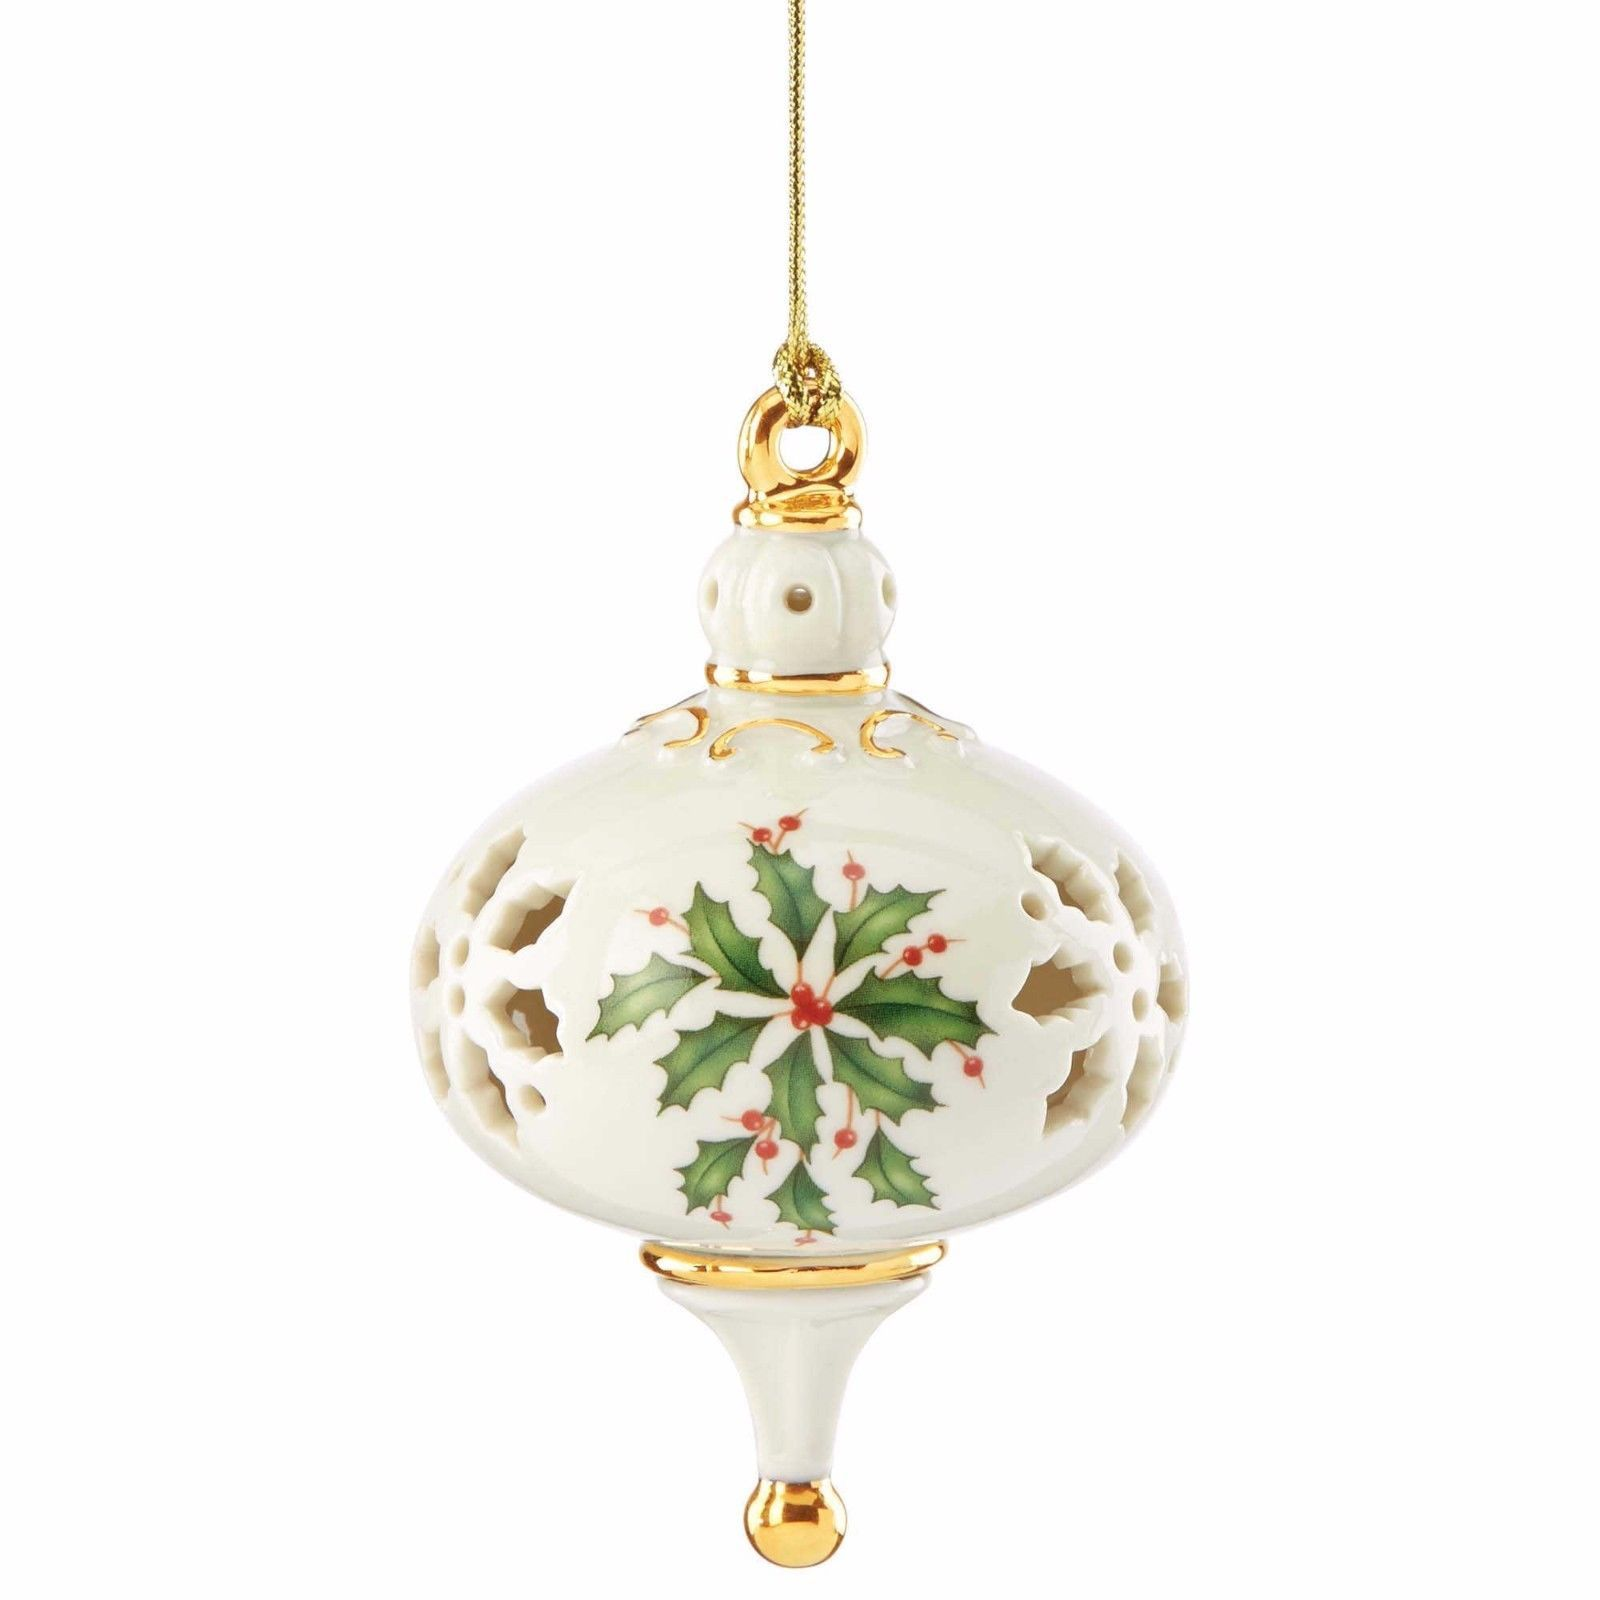 Lenox Christmas 2015 Holiday Pierced Ornament Annual Holly. Personalized Christmas Ornaments Target. Cheap Inflatable Christmas Decorations Uk. Green Christmas Decorations Ideas. Christmas Decorations Ideas Do It Yourself. Christmas Diy Yard Decorations. Easy To Make Christmas Decorations For The Office. Cadbury Christmas Tree Decorations. White Christmas Reindeer Ornaments